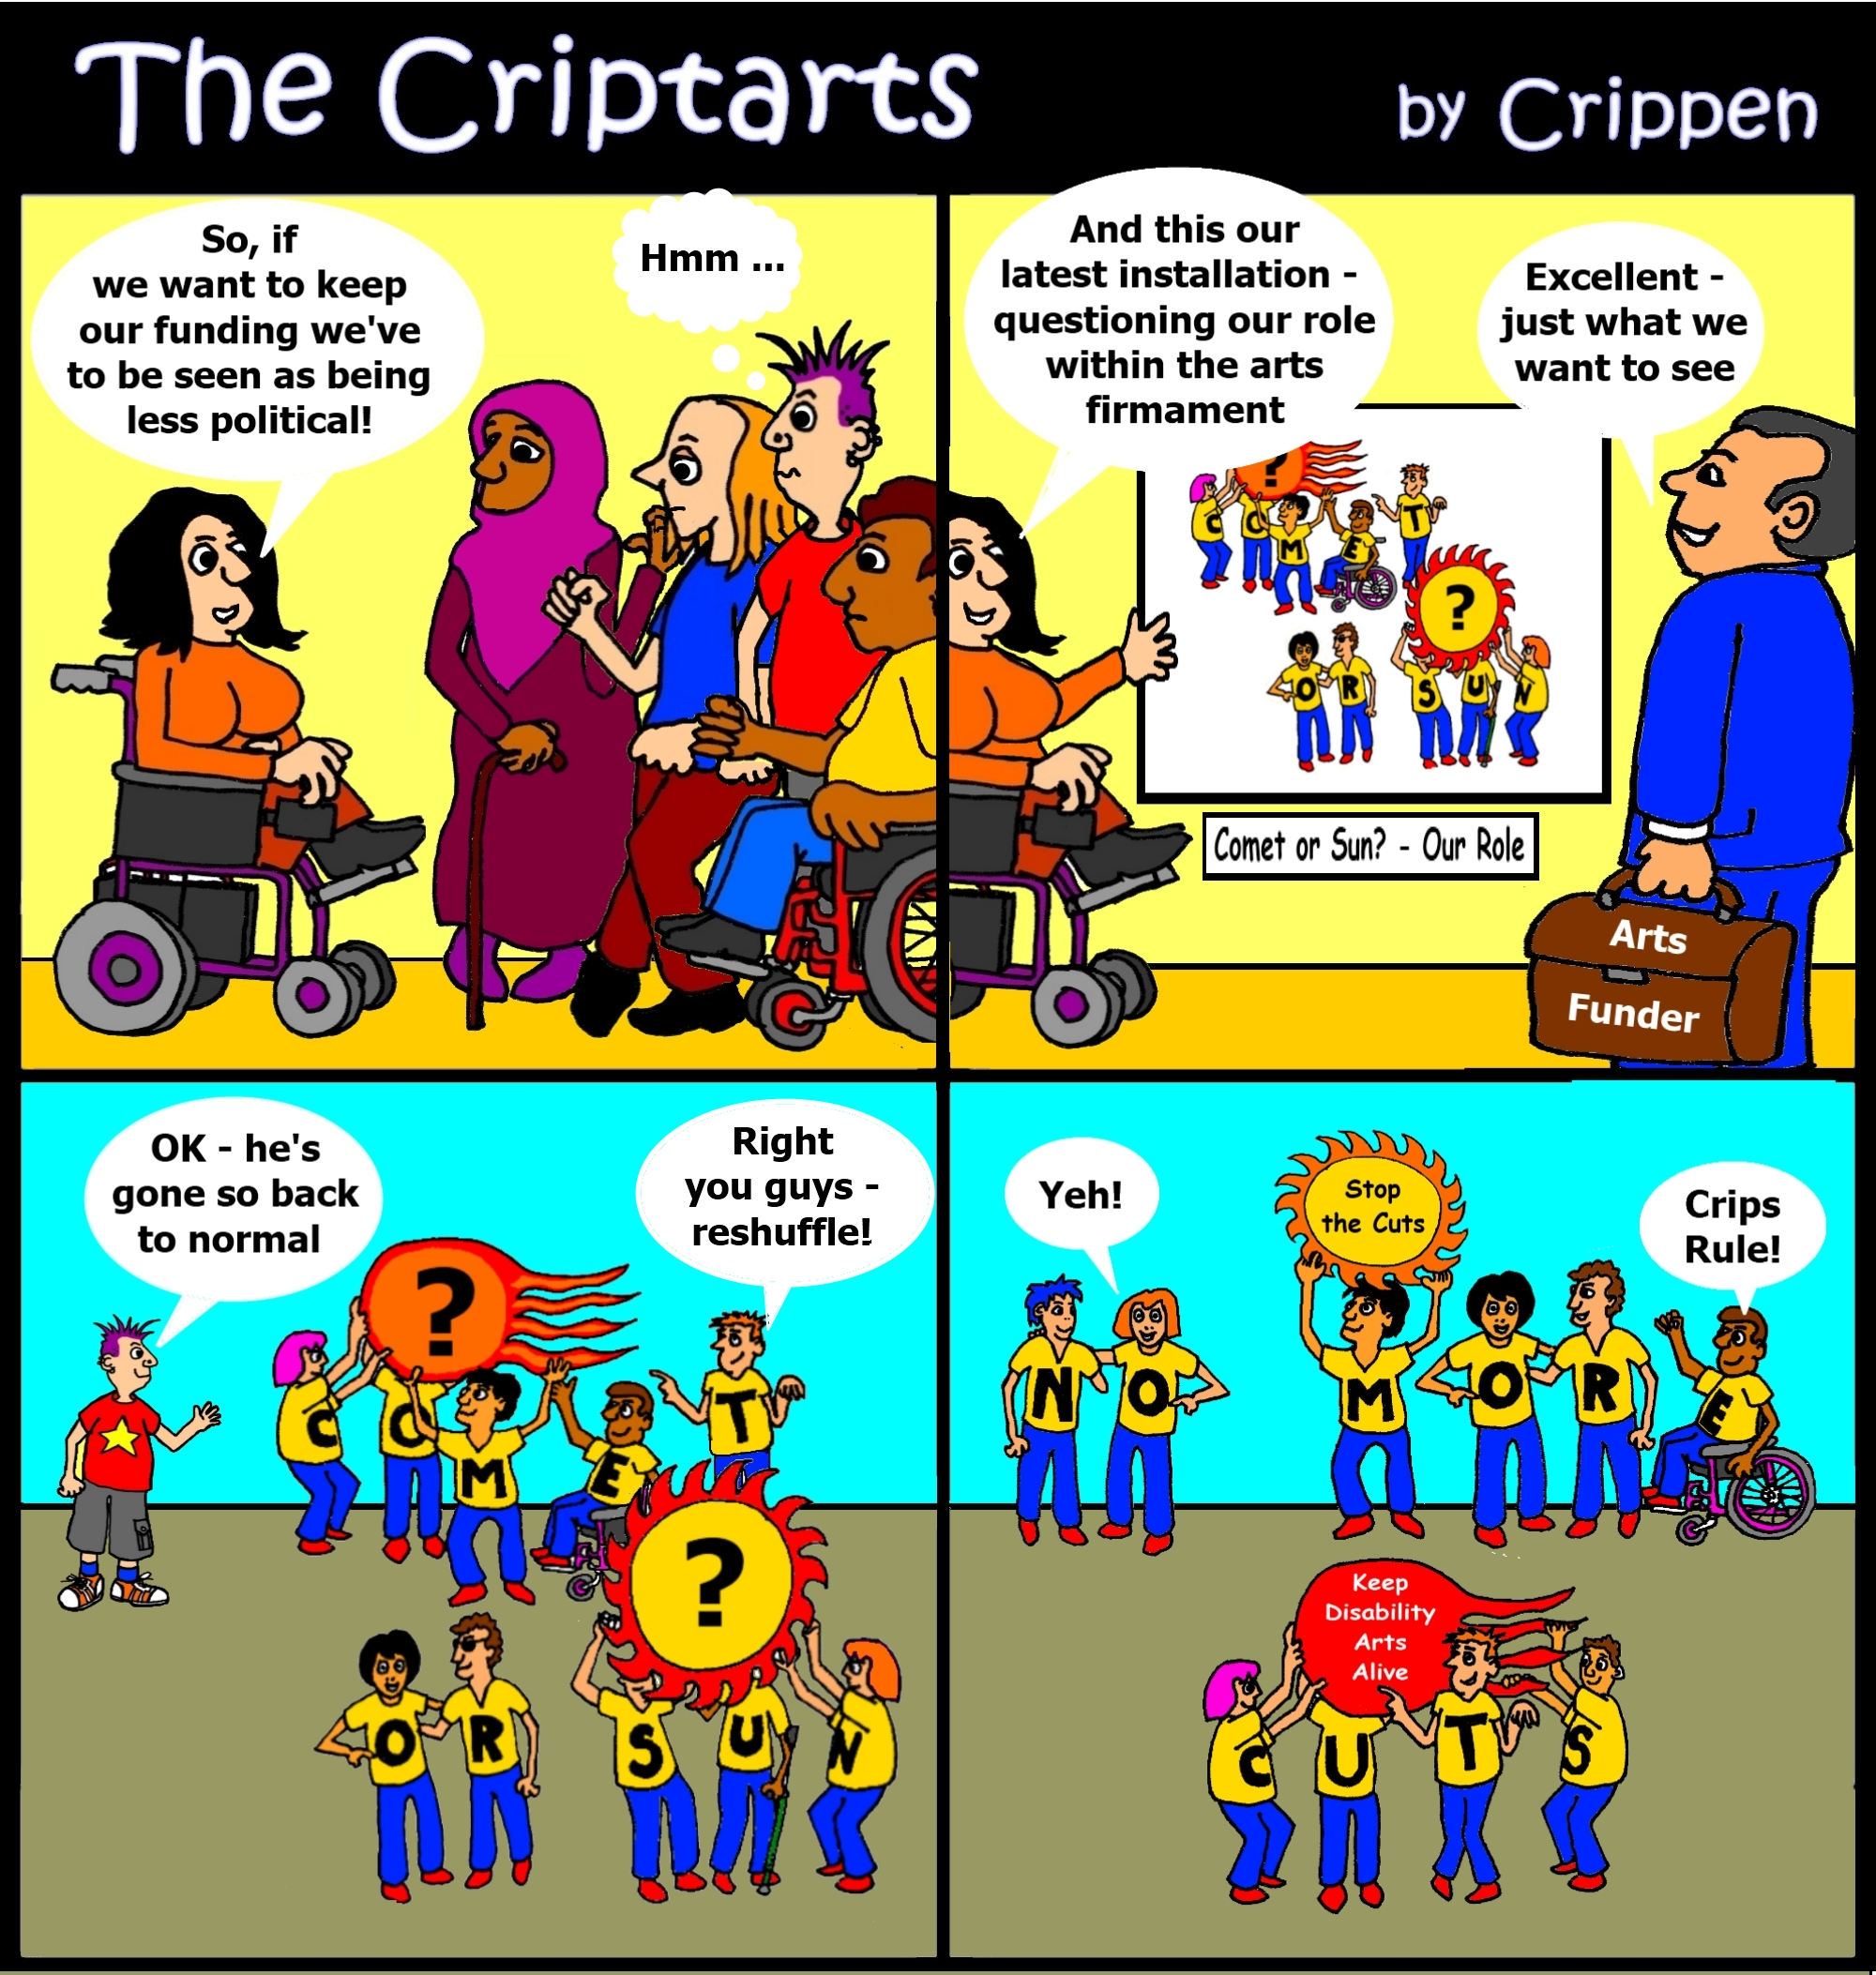 The Criptarts find a way around funding restrictions ...